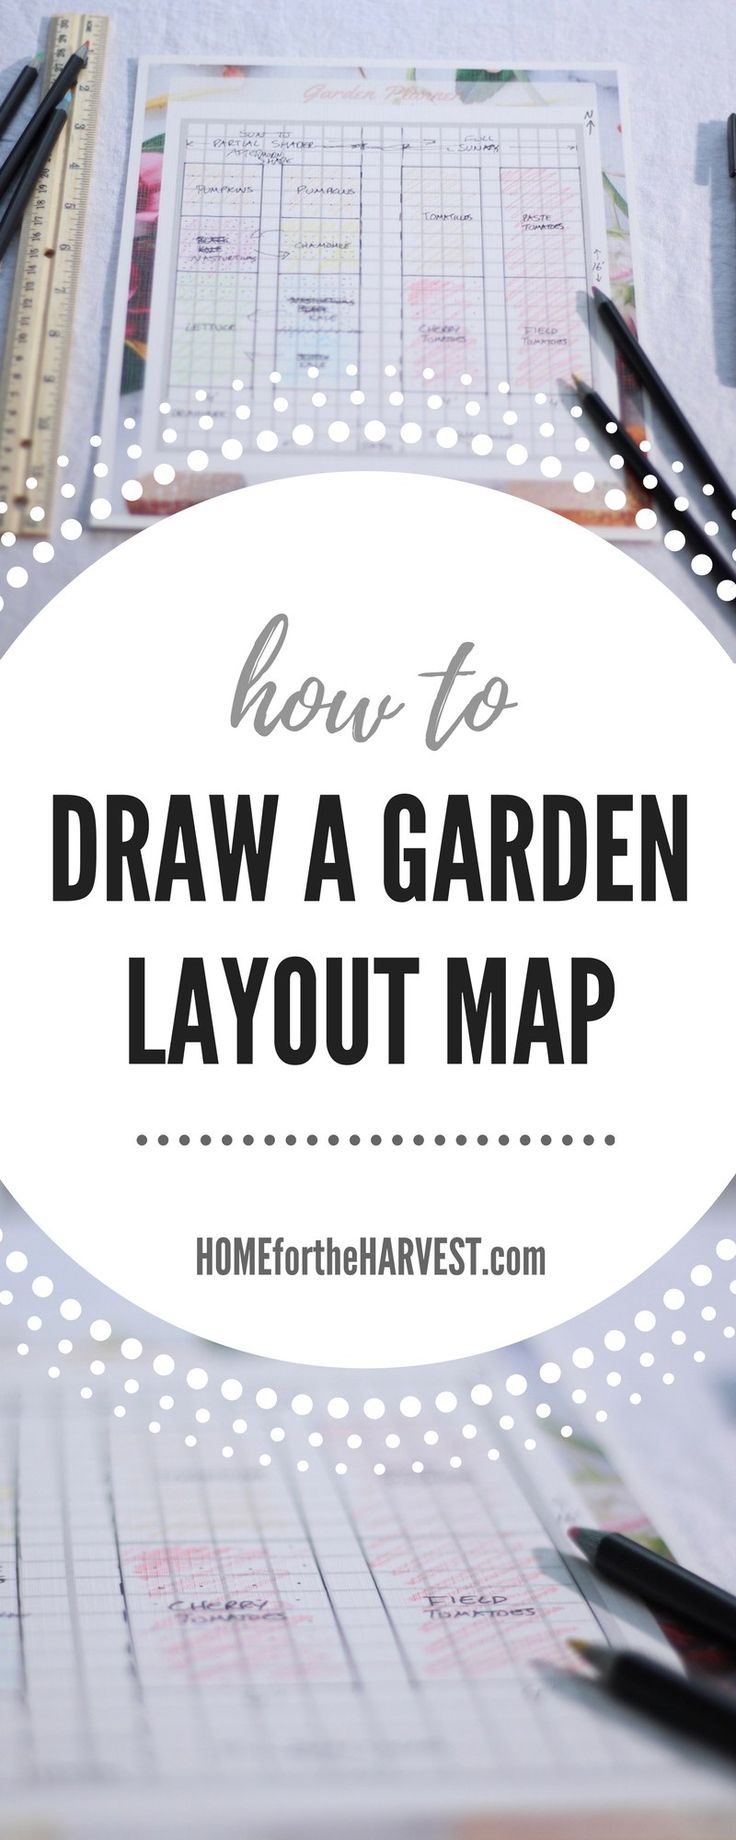 Garden Layout Ideas find this pin and more on gardening layout How To Draw A Garden Layout Map A Key Part Of The Garden Planning Process